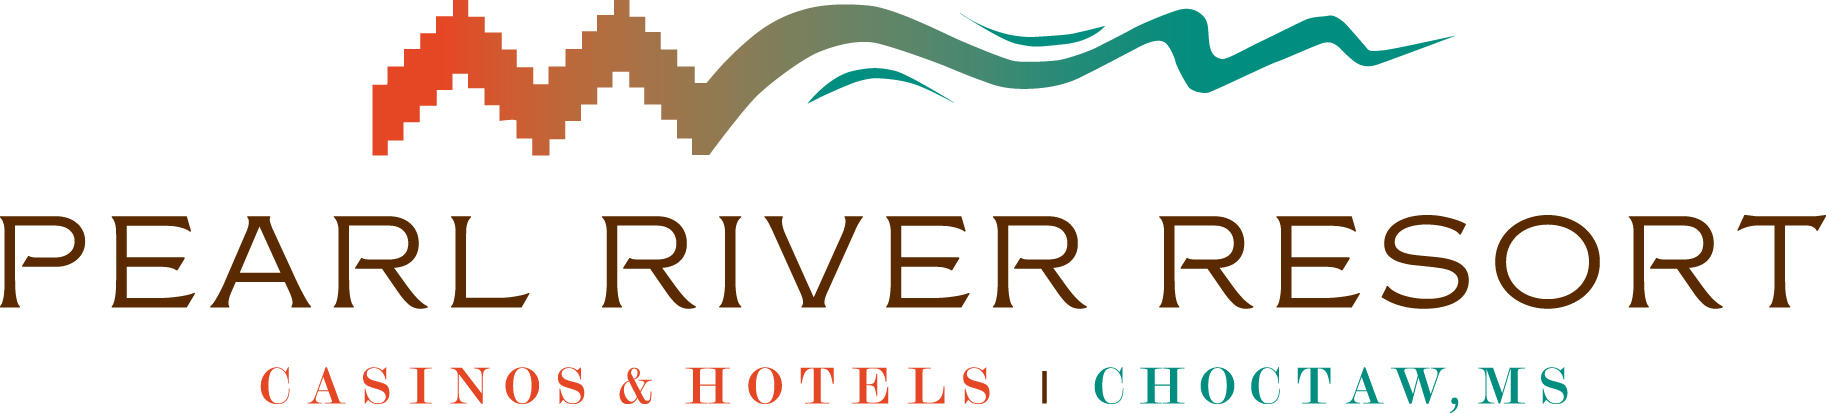 Pearl river resort and casino address indian casinos in san luis obispo county